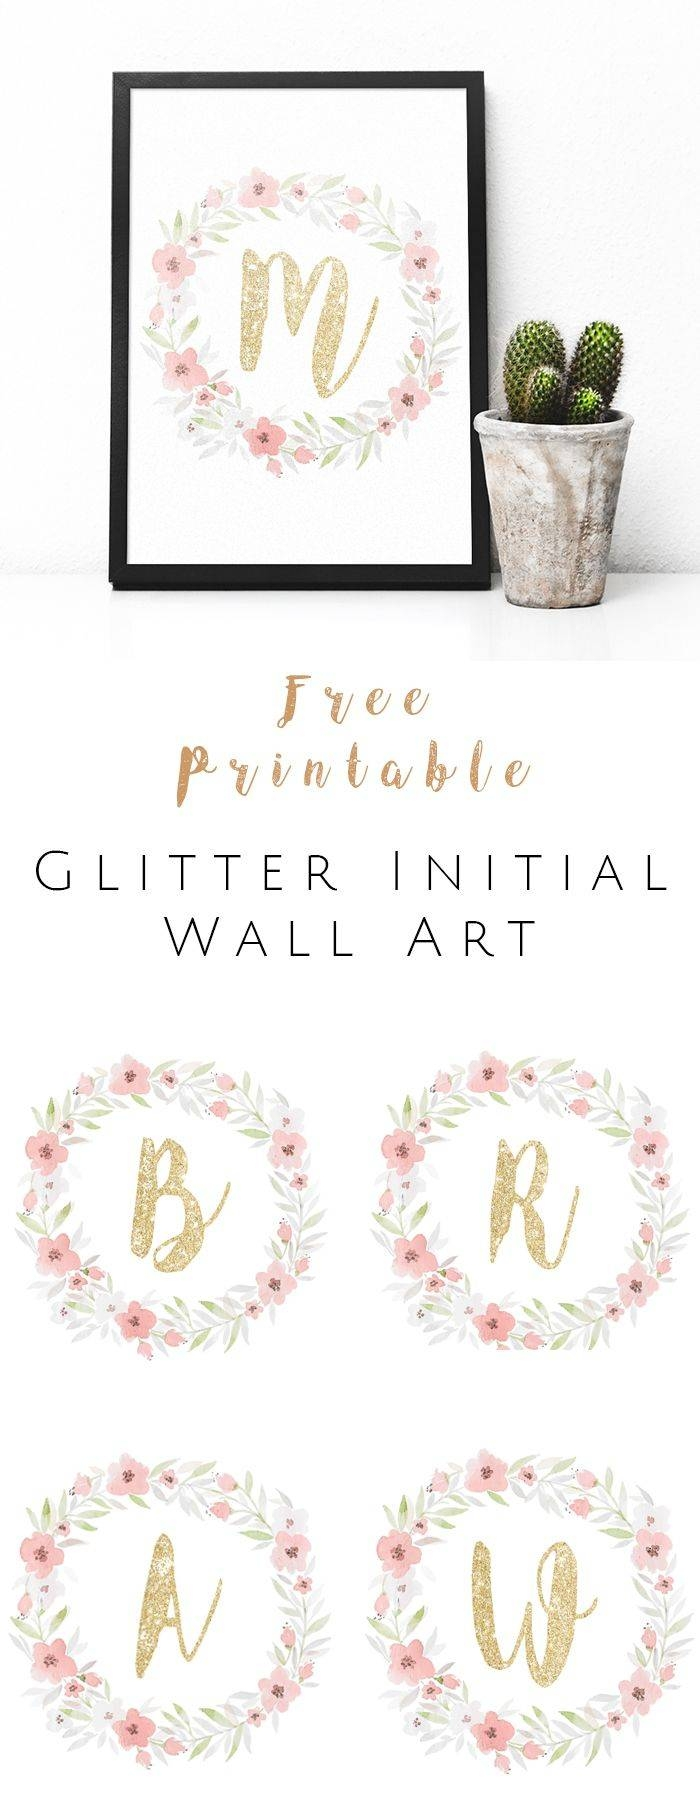 25+ Unique Letter Wall Art Ideas On Pinterest | Letters On Wall With Regard To Latest Cucina Wall Art (View 23 of 30)